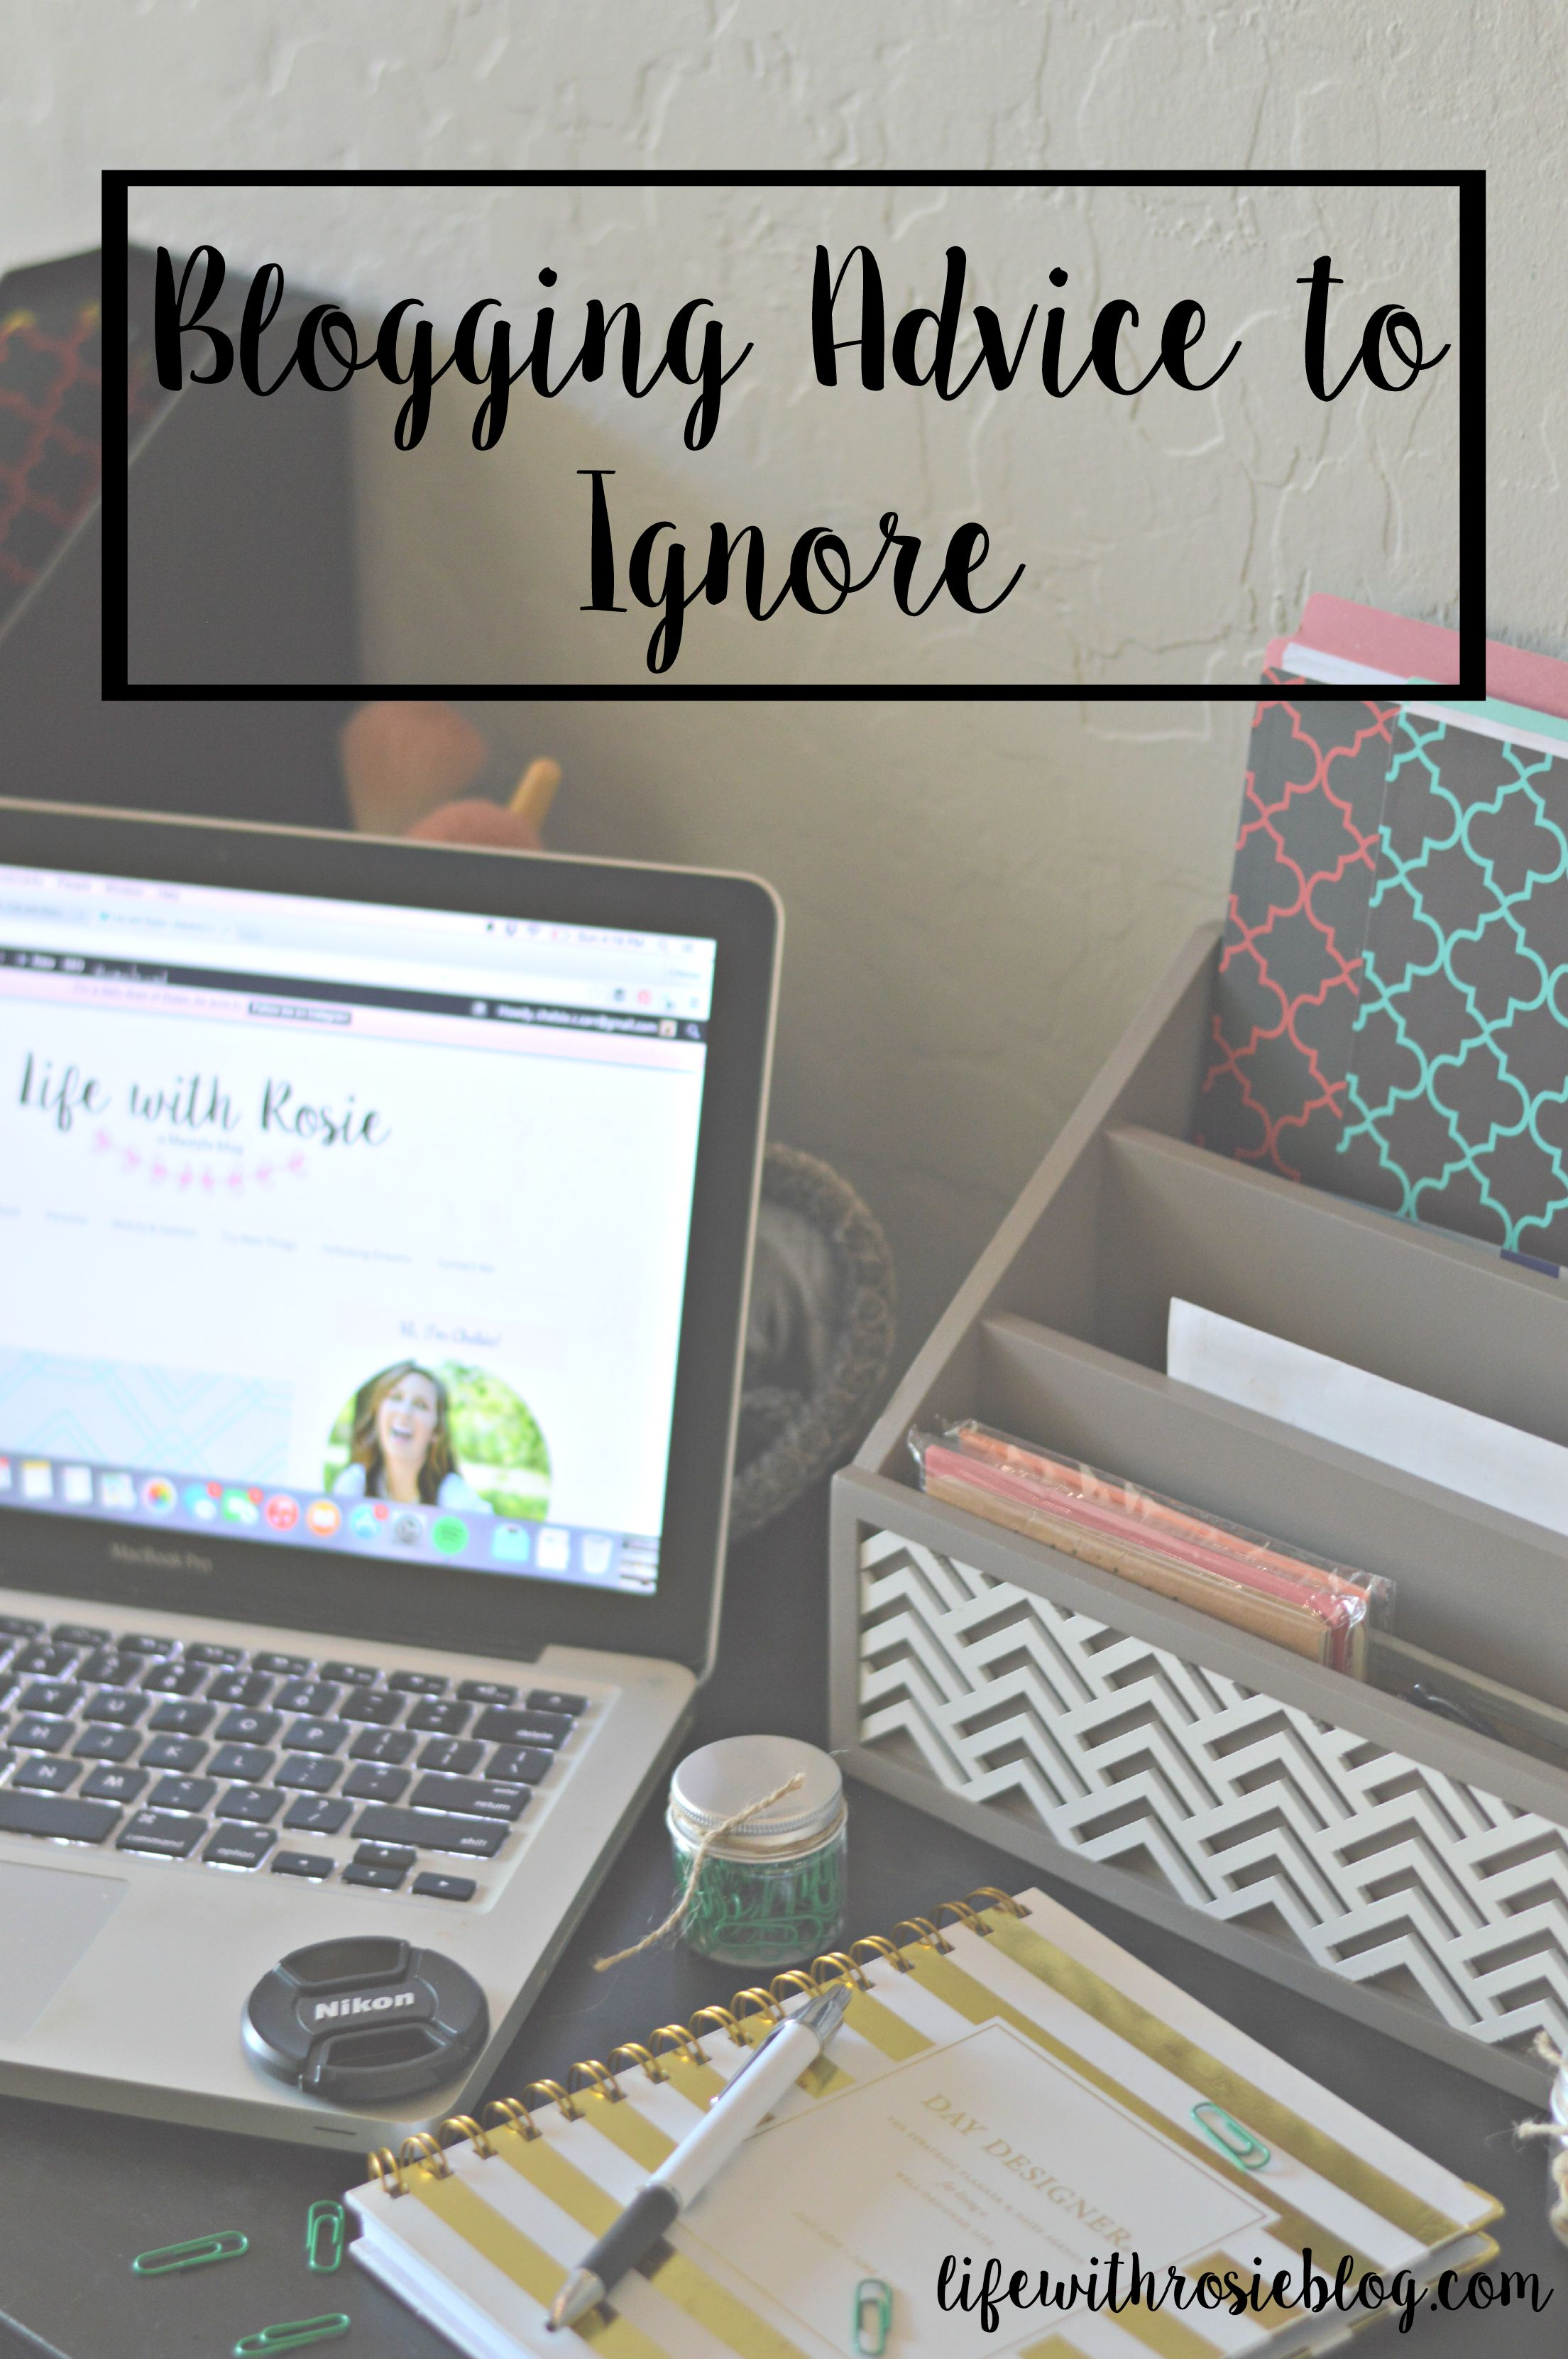 If you are a new blogger or just starting out, click here to find out what blogging tips to ignore! // Life with Rosie